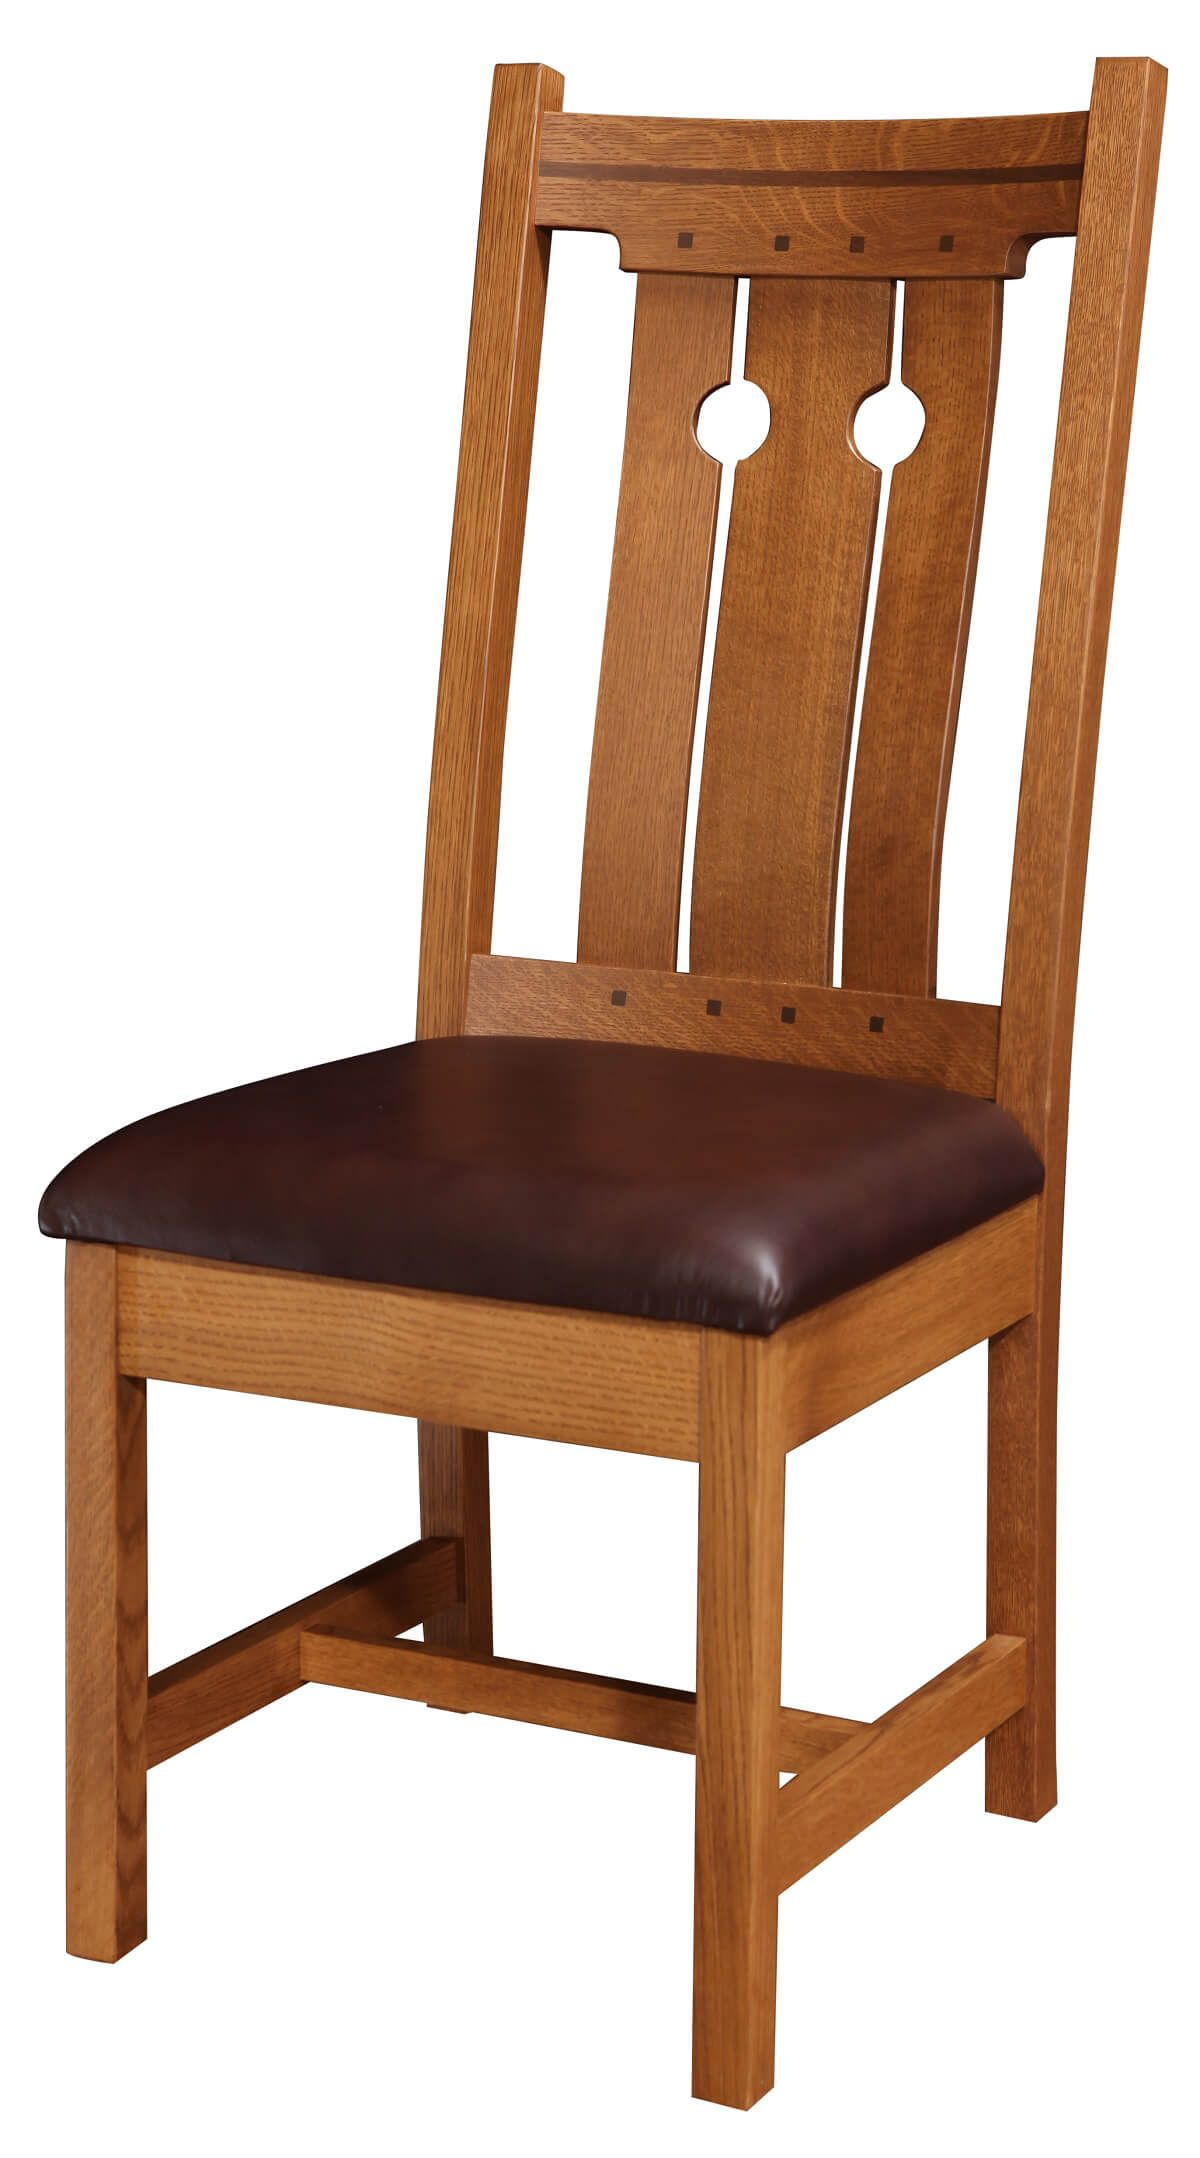 Caldera Mission Dining Chair